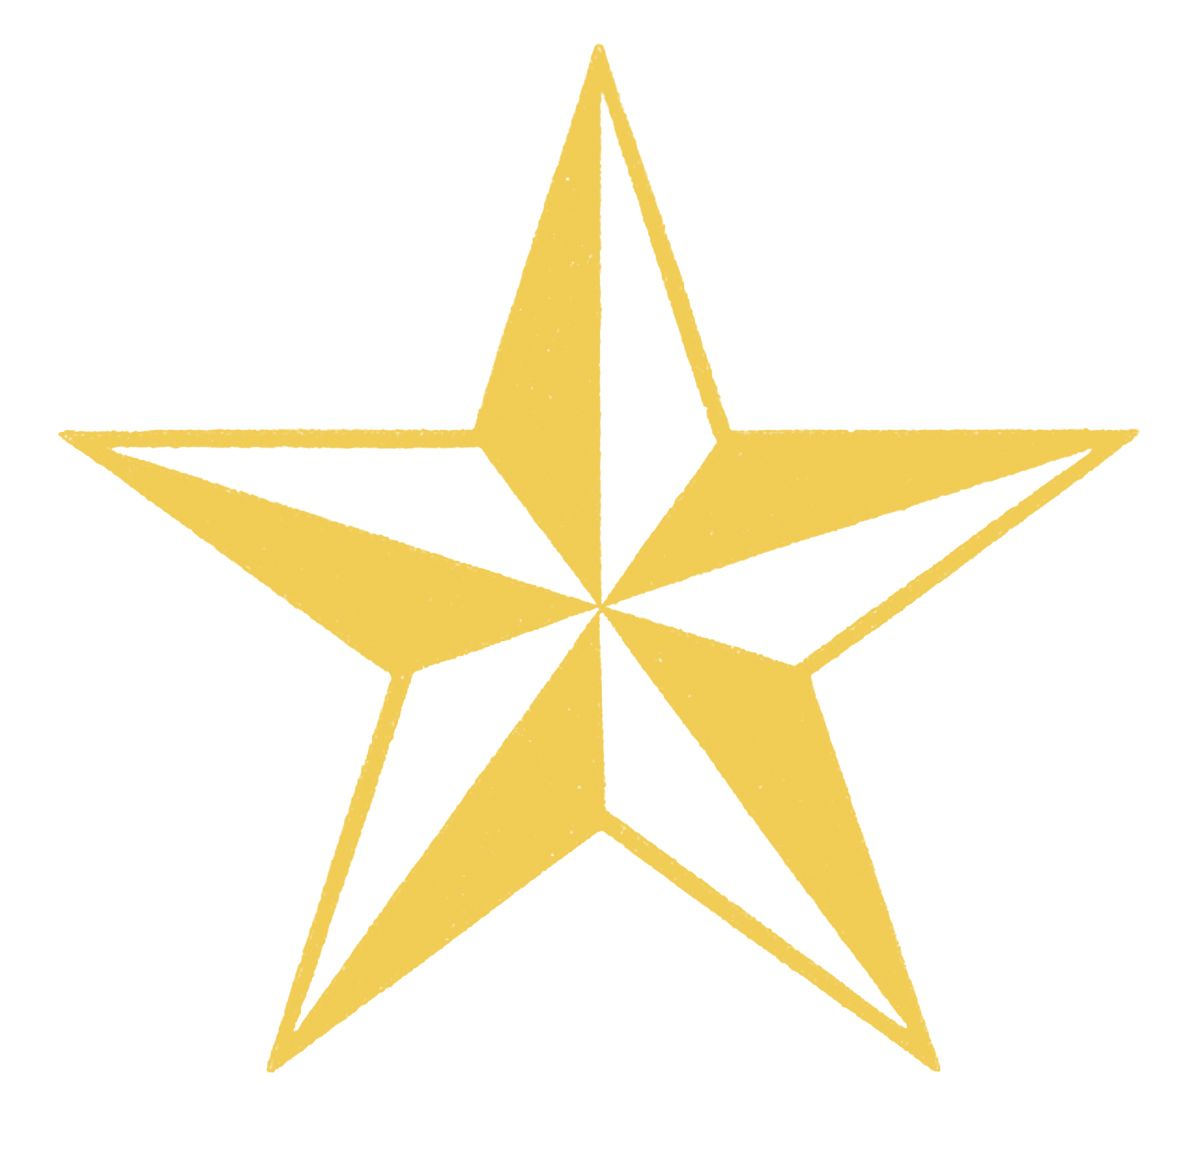 hight resolution of free star clipart images for teachers students web designers crafters etc to use in projects printables reports